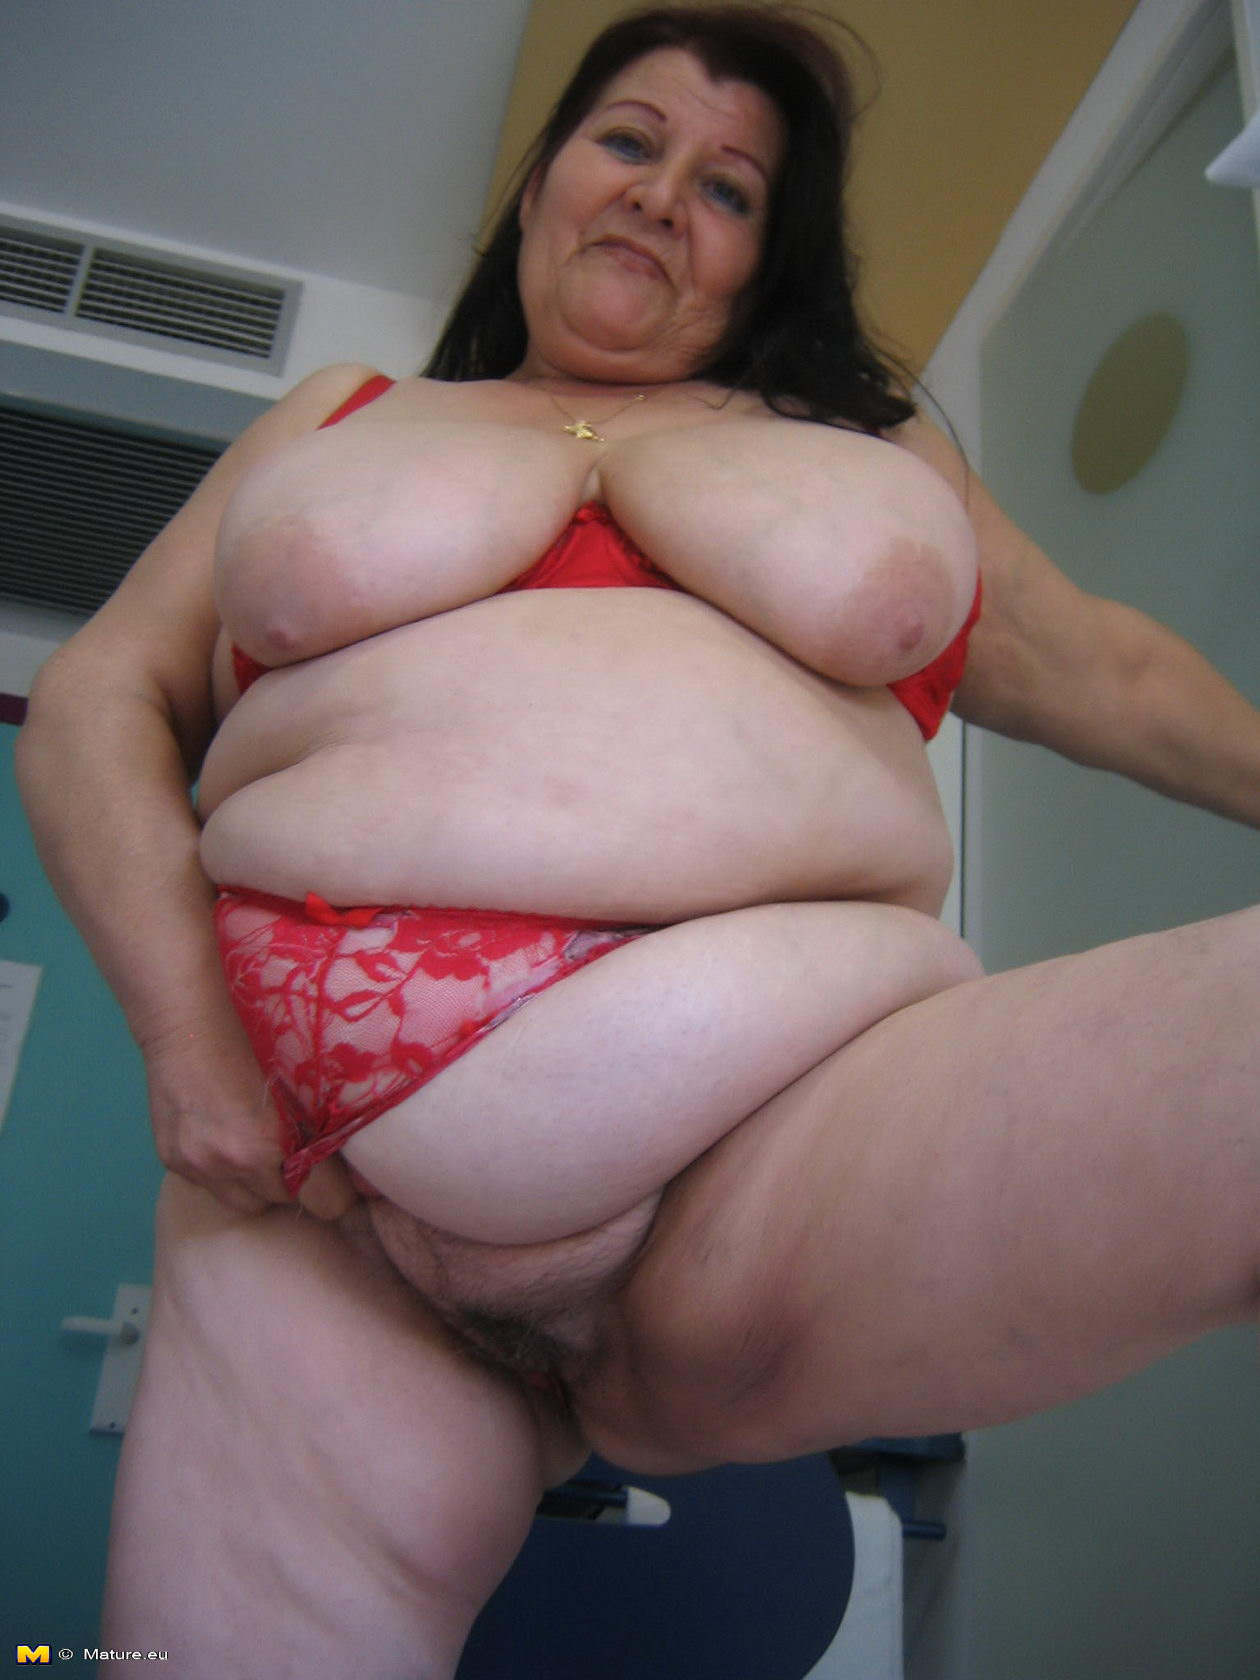 Big titted mature slut playing with herself commit error